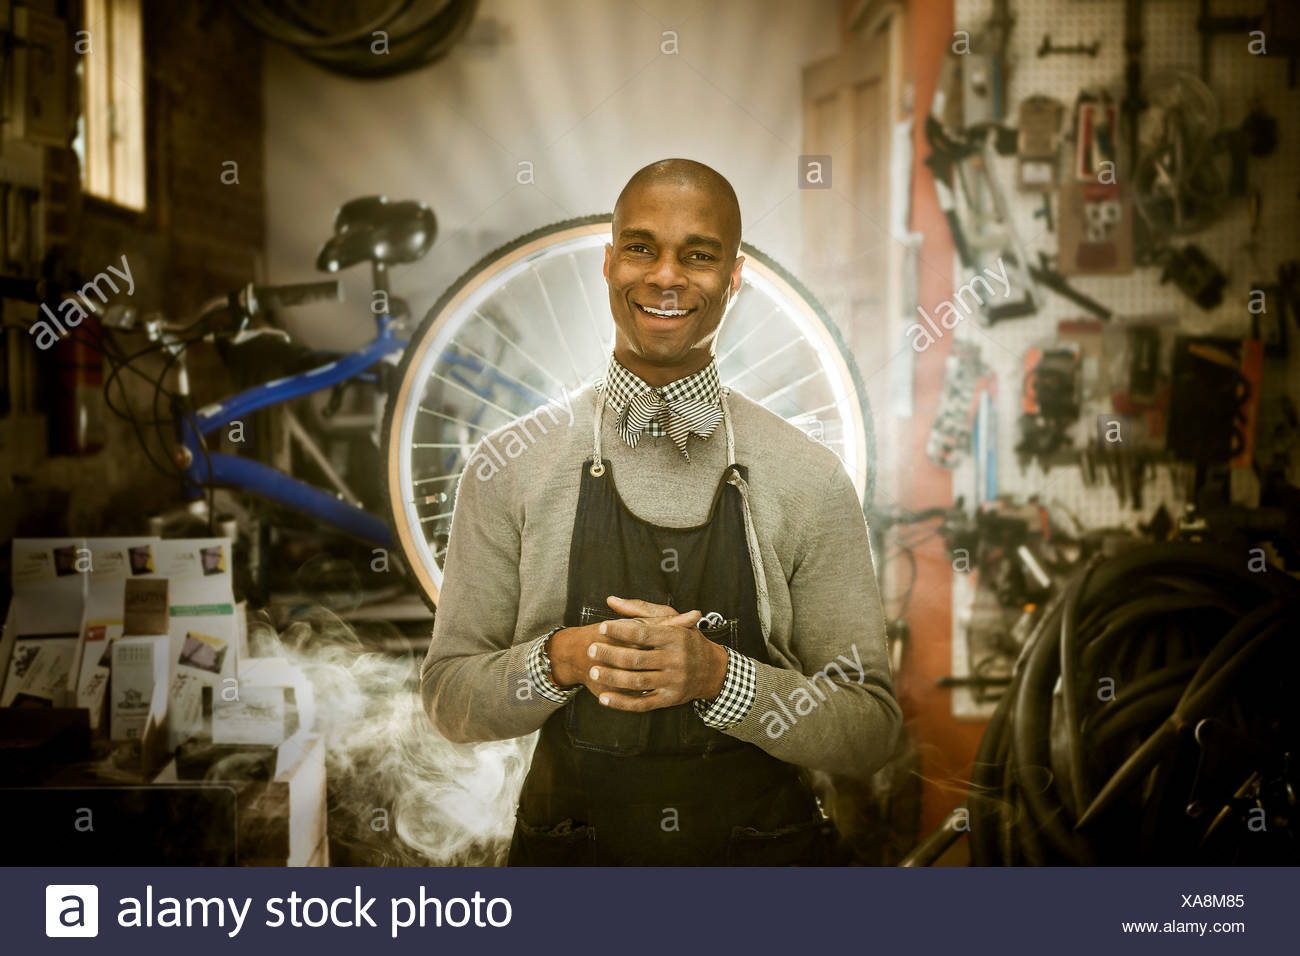 Bike mechanic against backdrop of heavenly rays of light - Stock Image